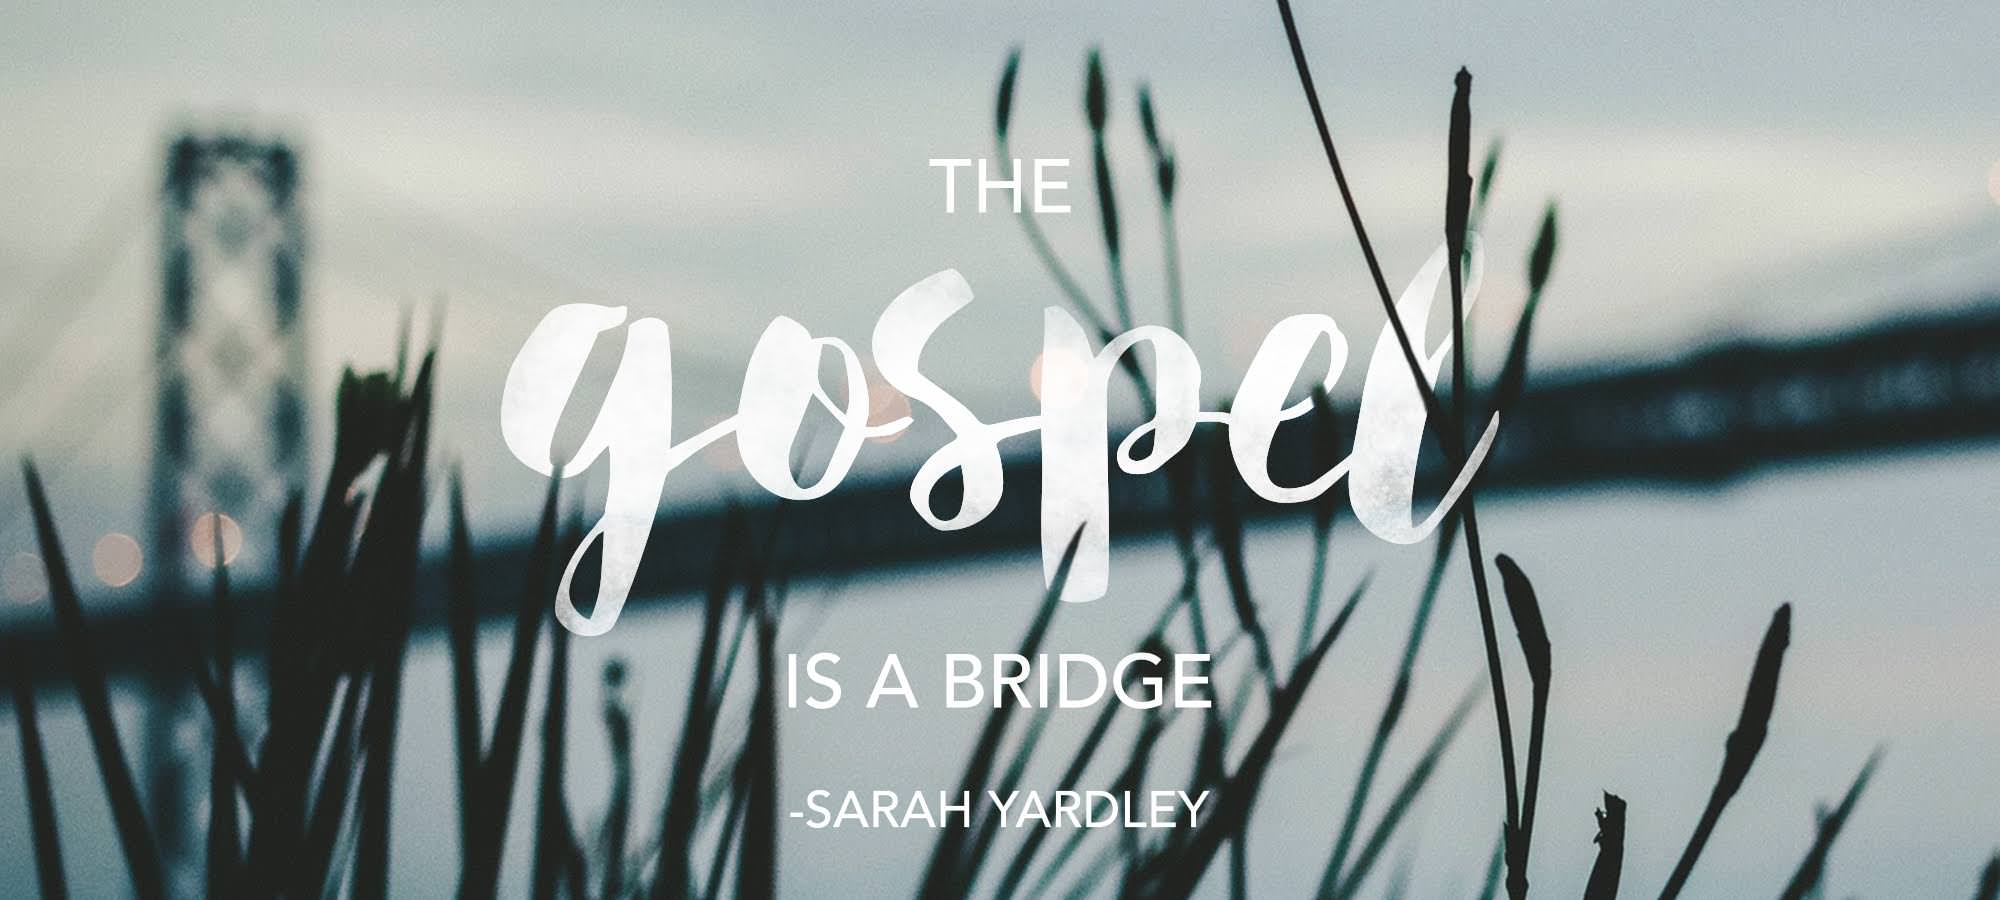 The Gospel is a Bridge